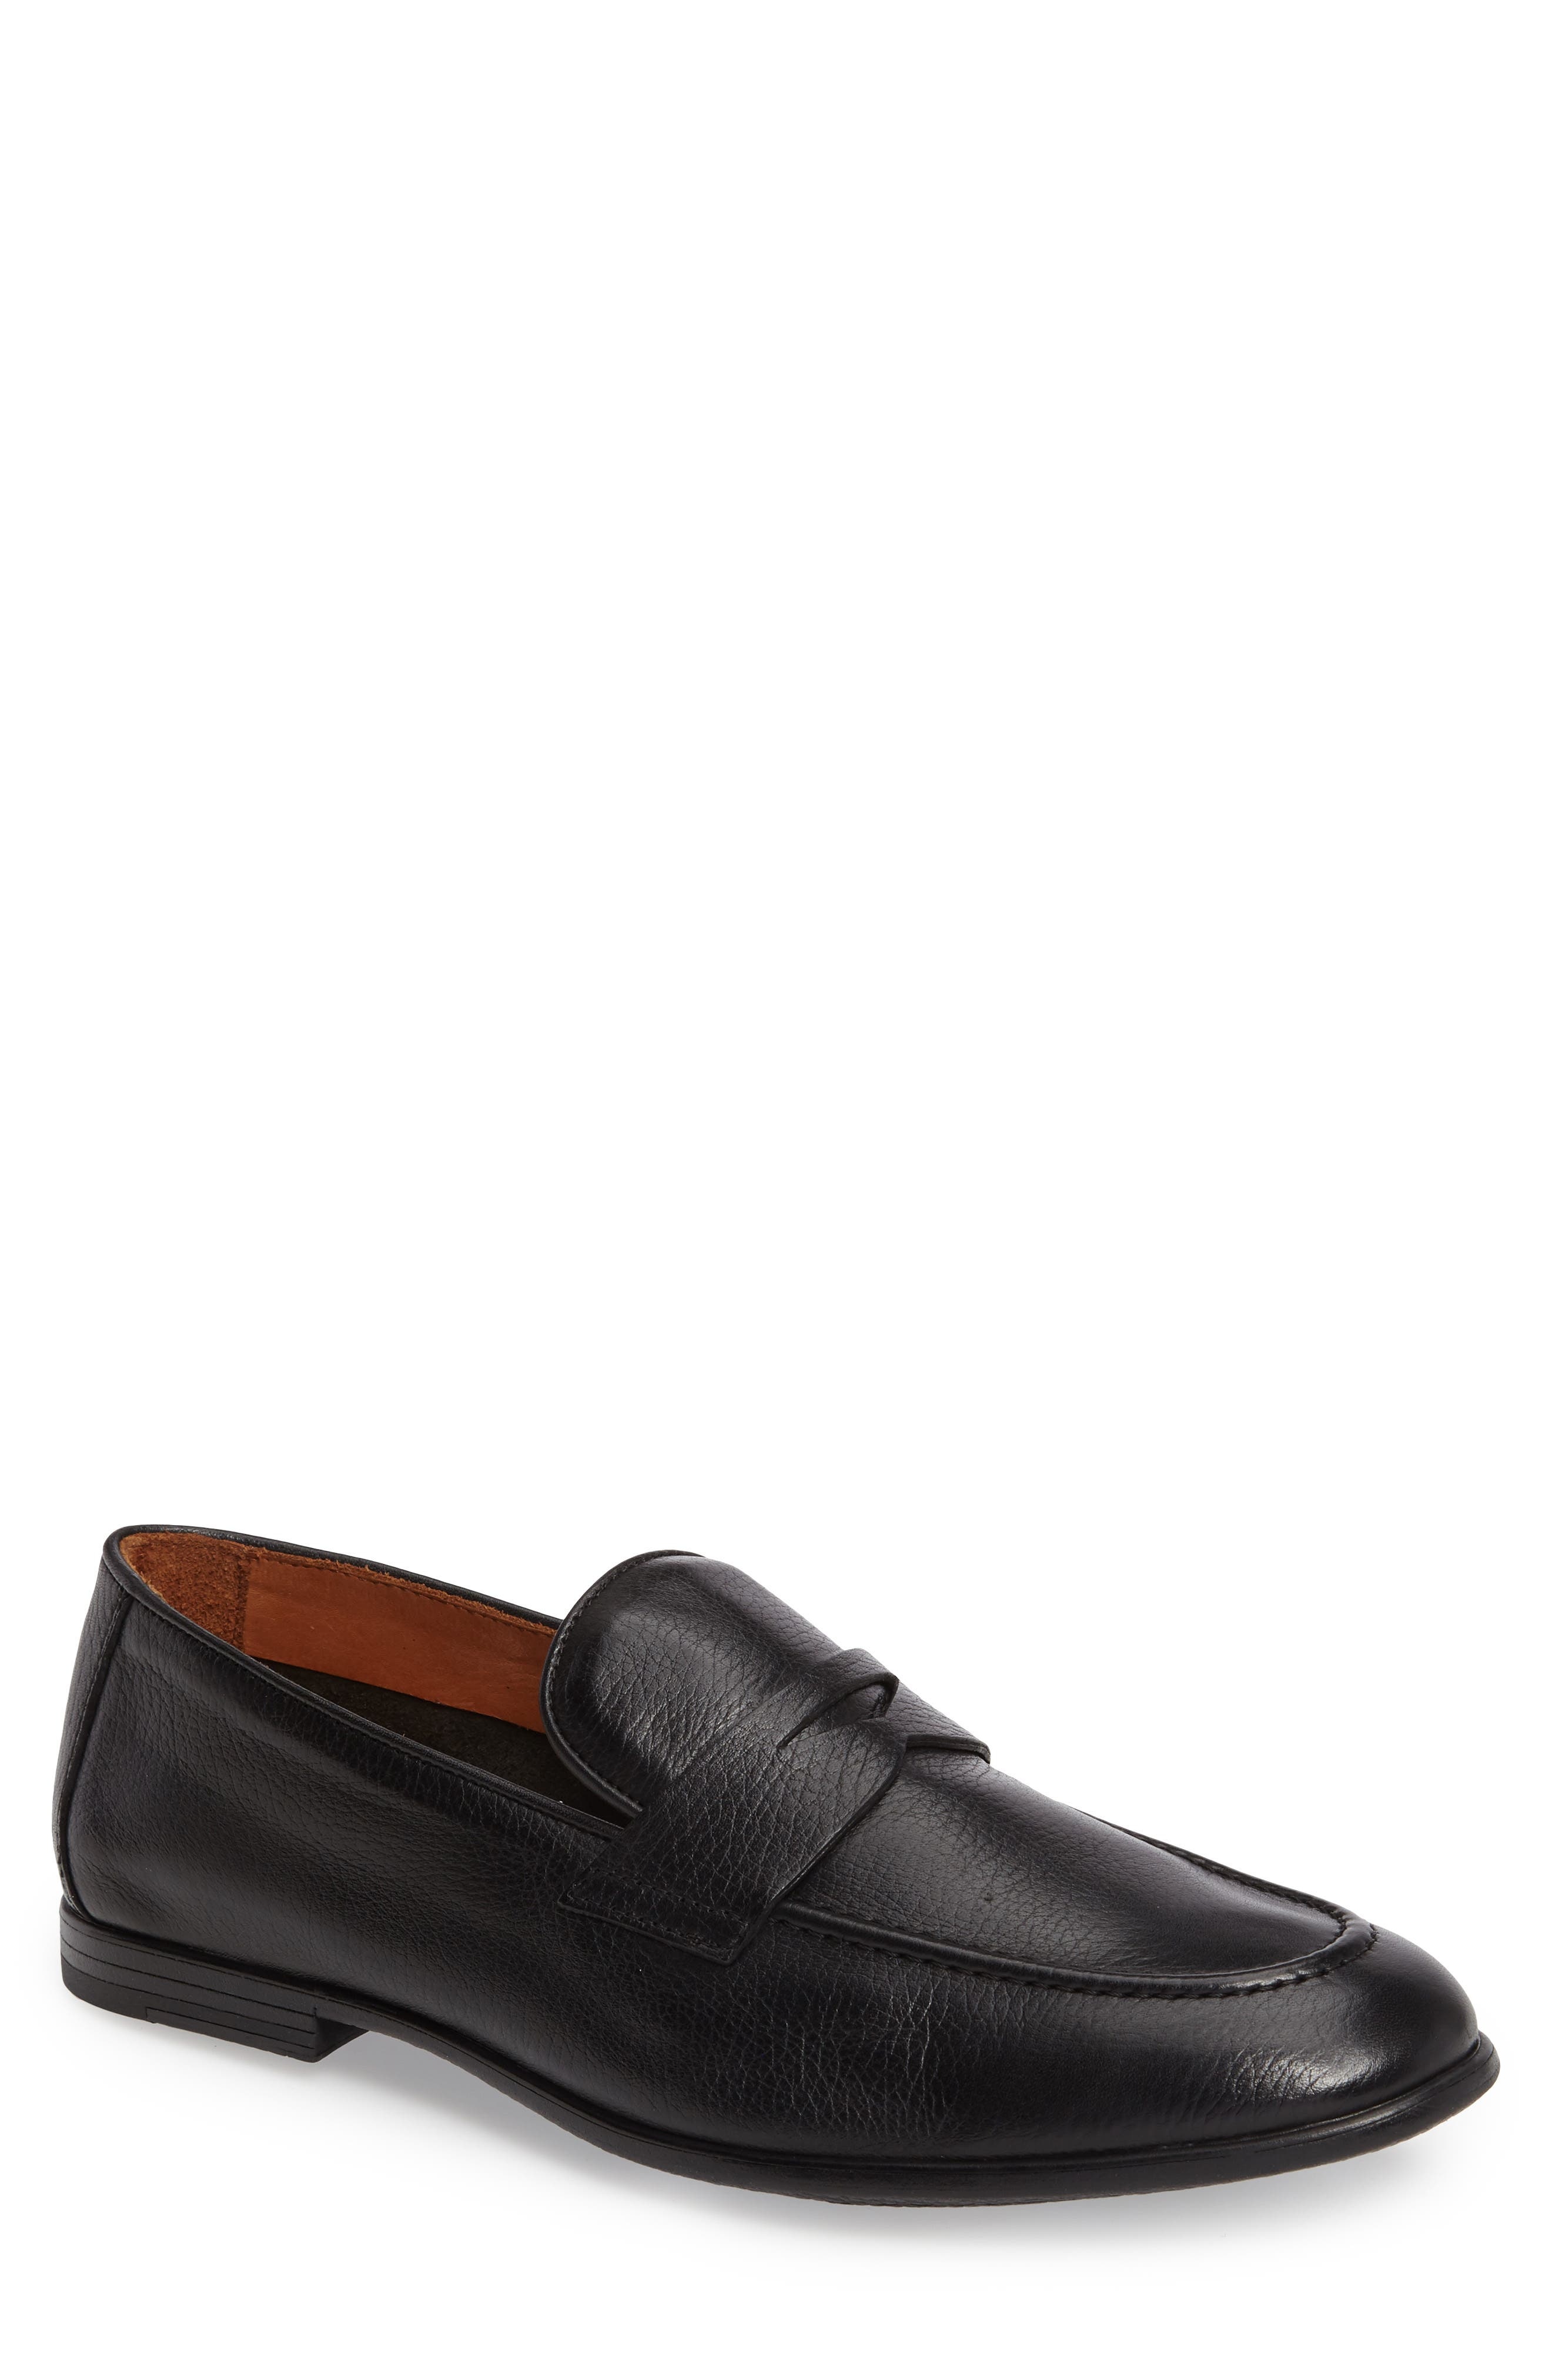 Dillon Penny Loafer,                         Main,                         color, 001